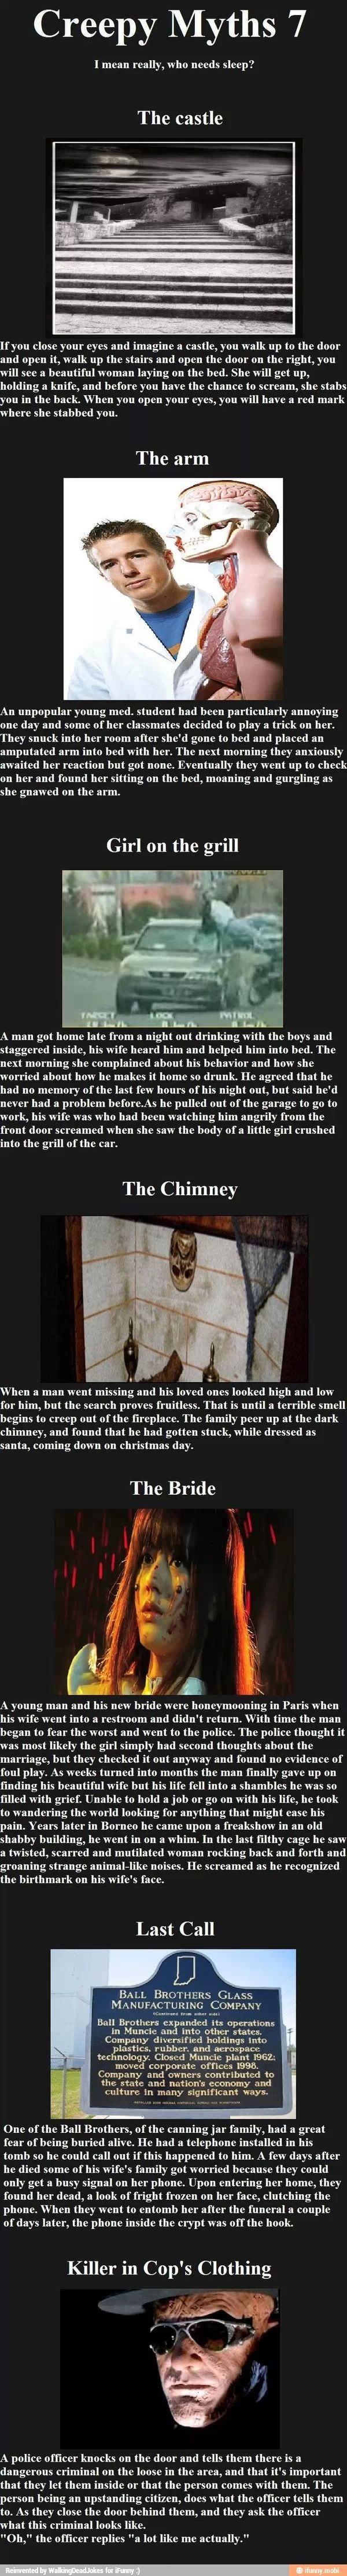 Uncategorized Scary Stories For Little Ones best 25 scary creepy stories ideas on pinterest funny the one about girl grill scared me